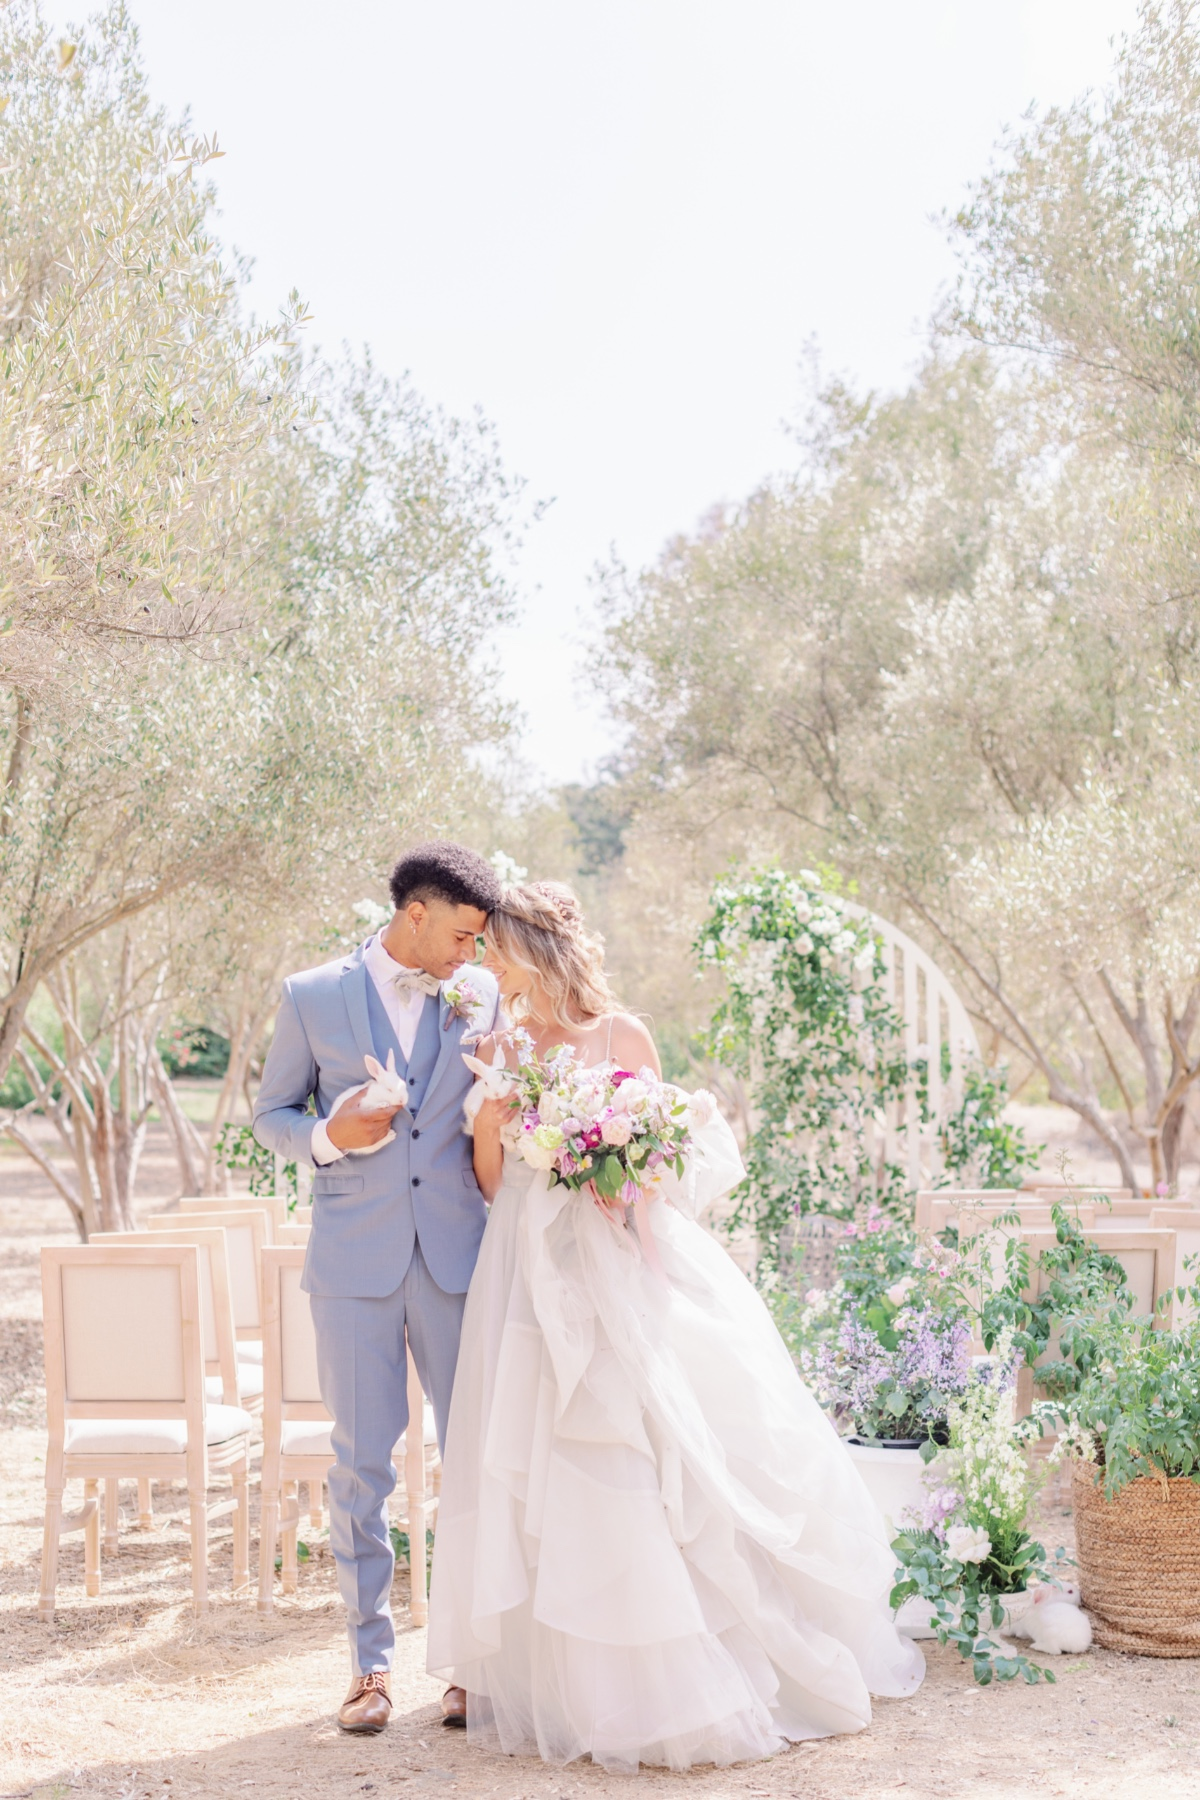 Make No Mistake, Spring Has Sprung And This Wedding Is Proof